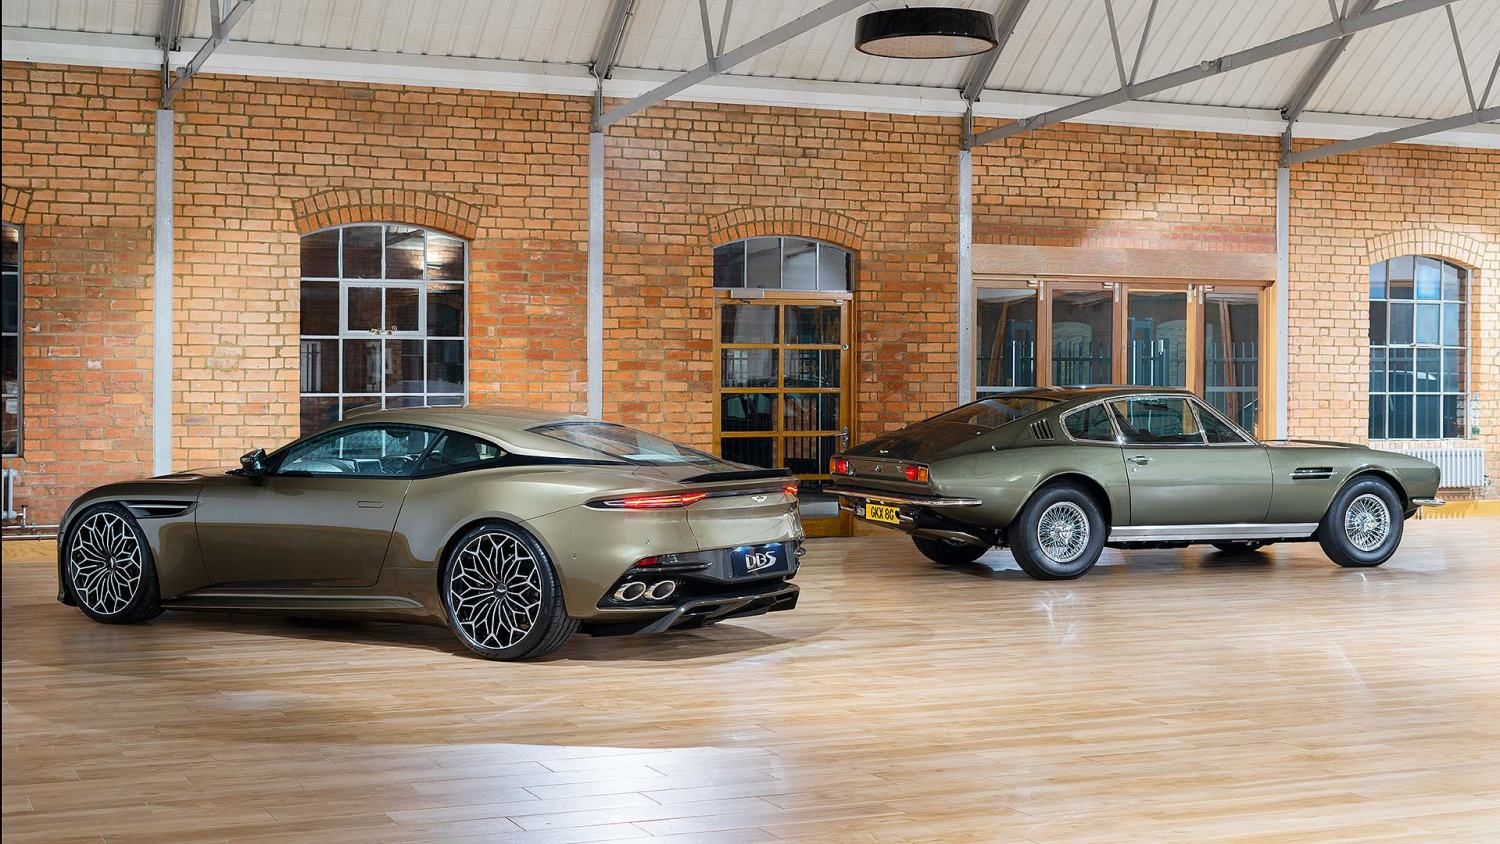 Aston Martin OHMSS DBS Superleggera